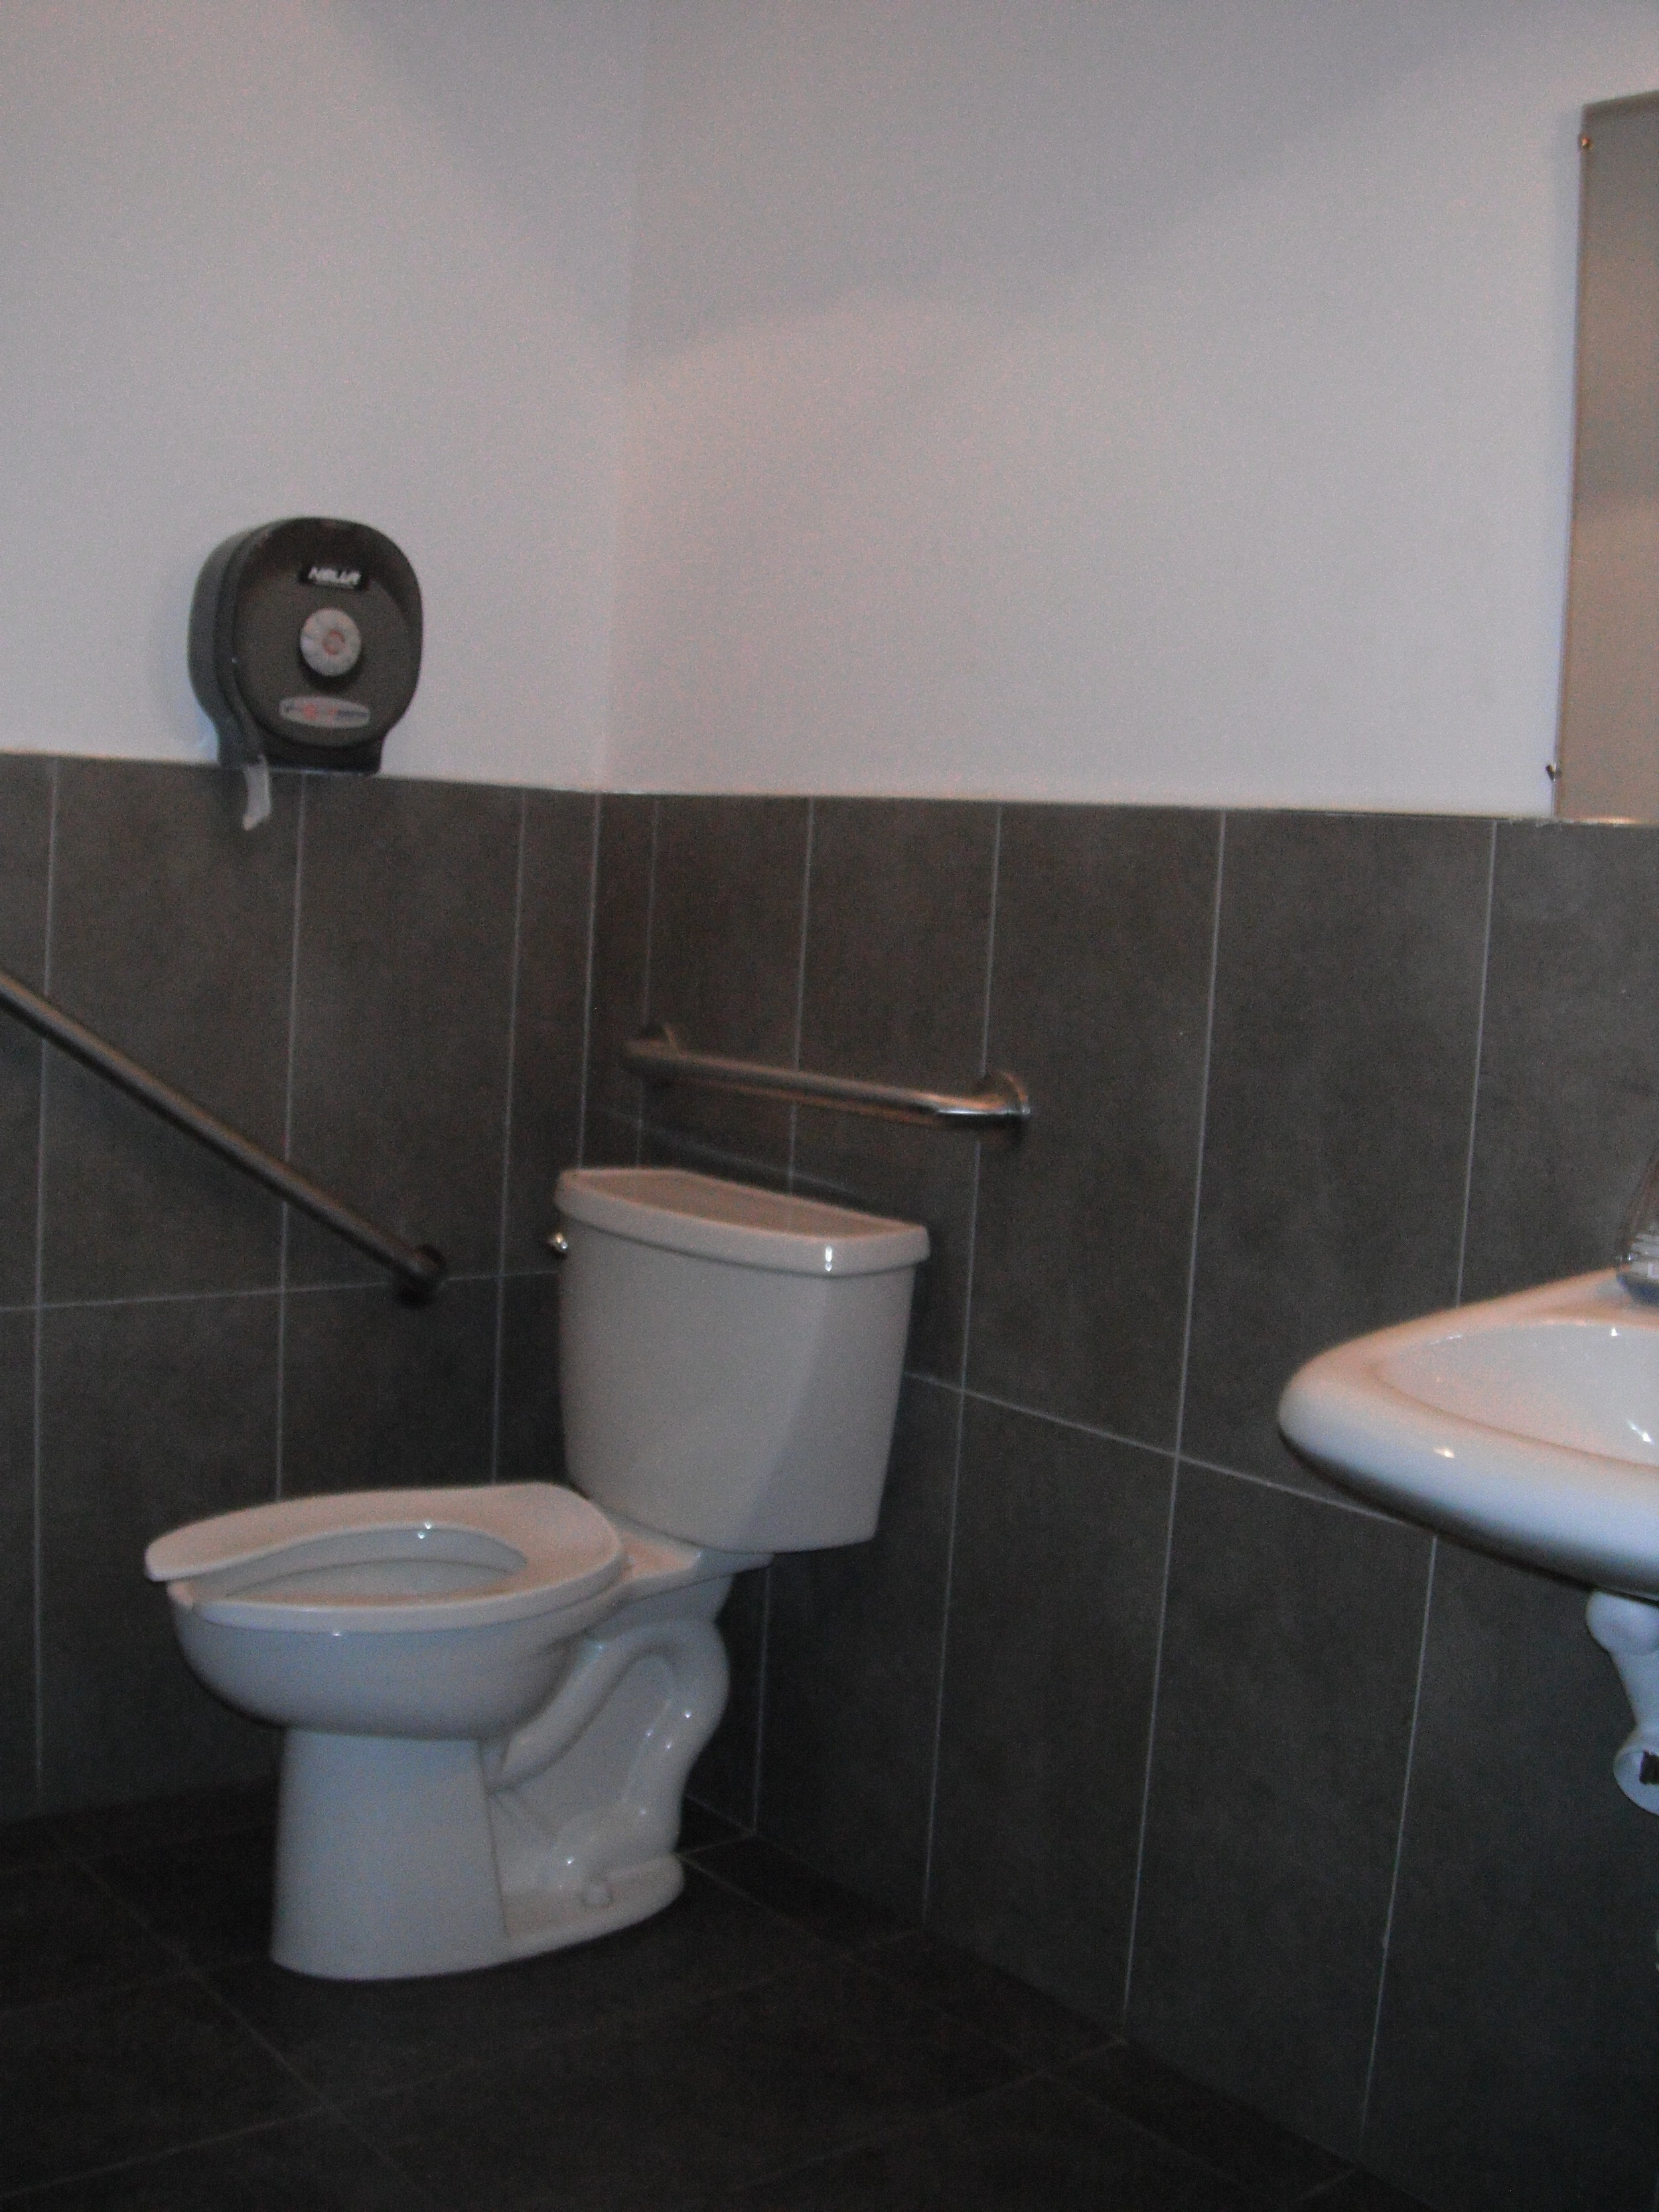 Image of accessible bathroom.